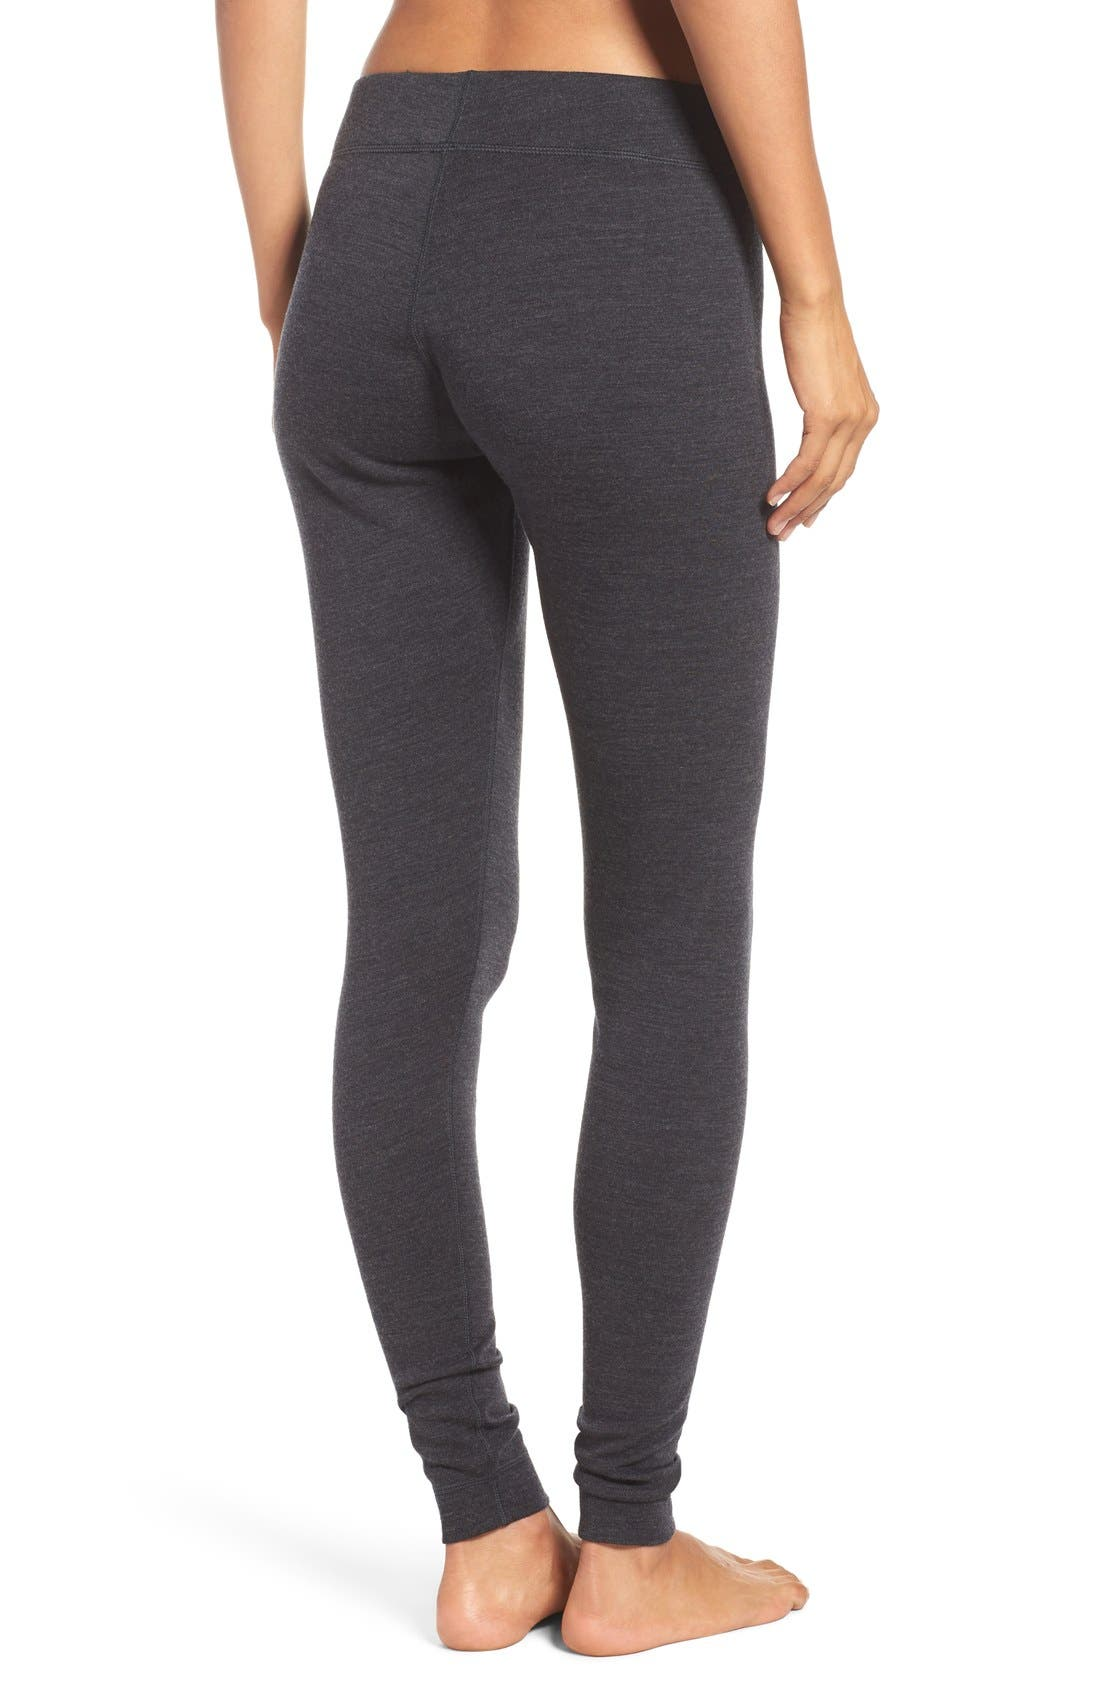 'NTS Mid 250' Bottoms,                             Alternate thumbnail 2, color,                             Charcoal Heather